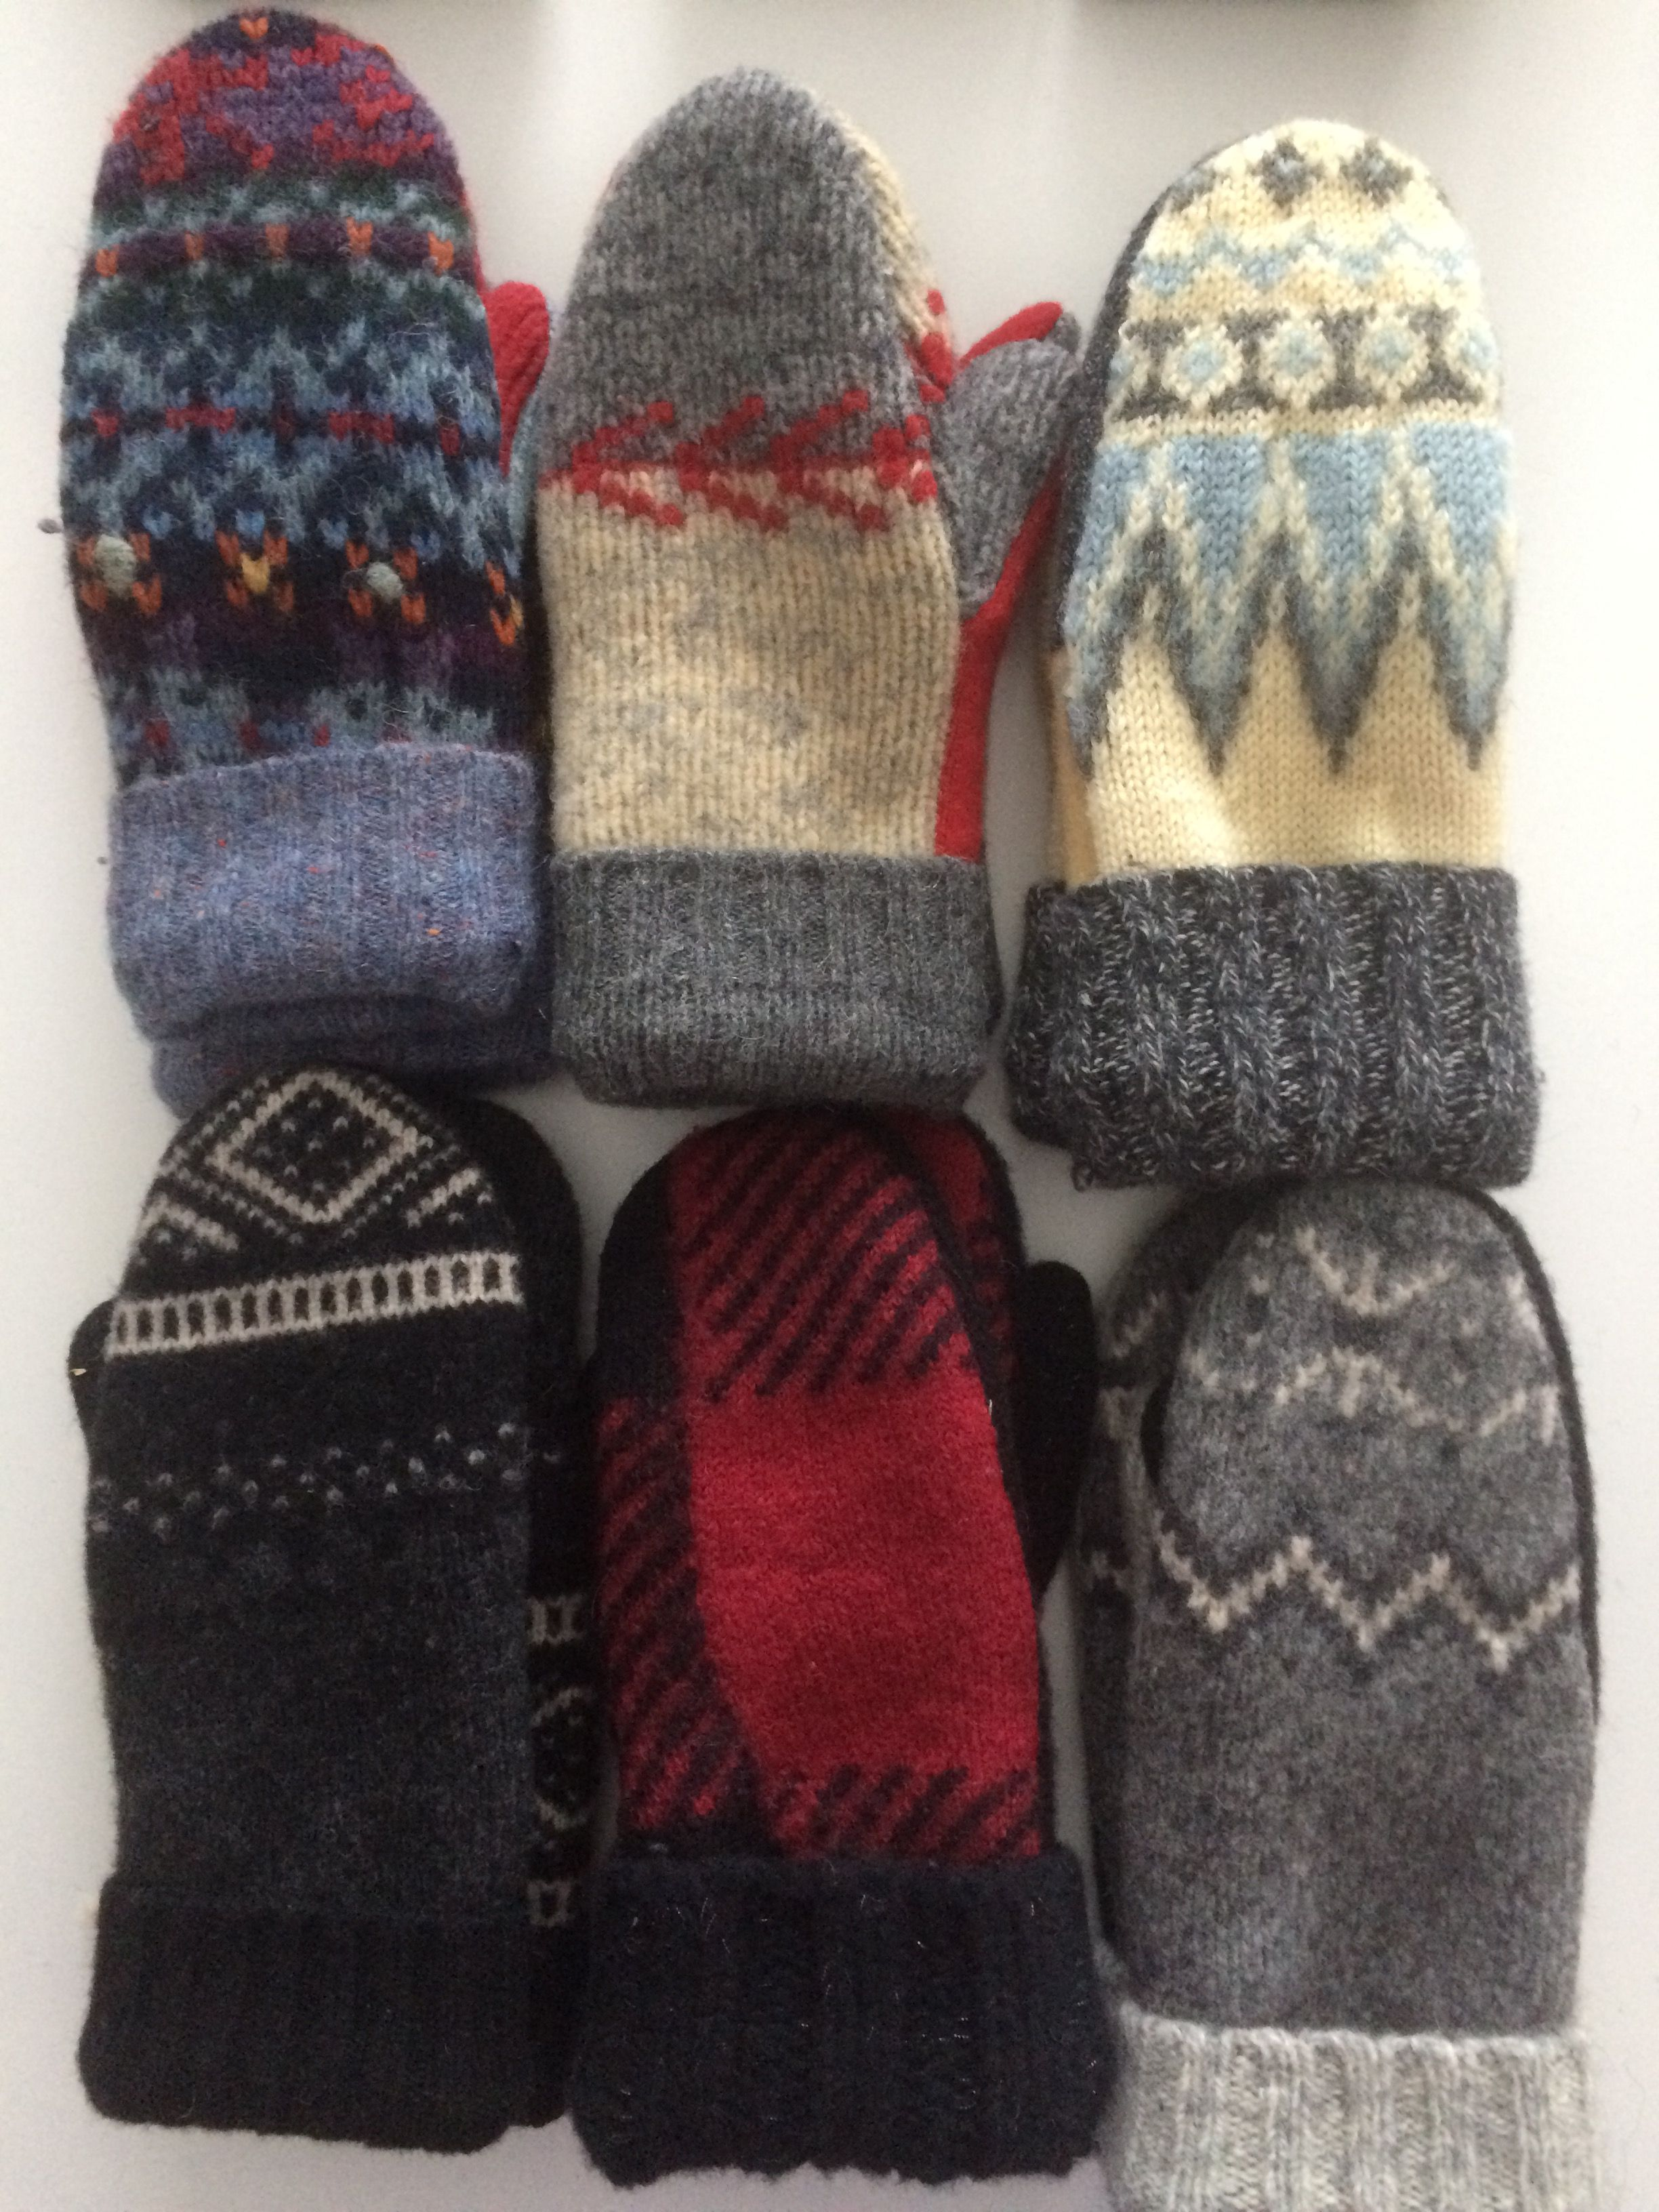 Sweater Mittens Mostly Wool Available 1 17 17